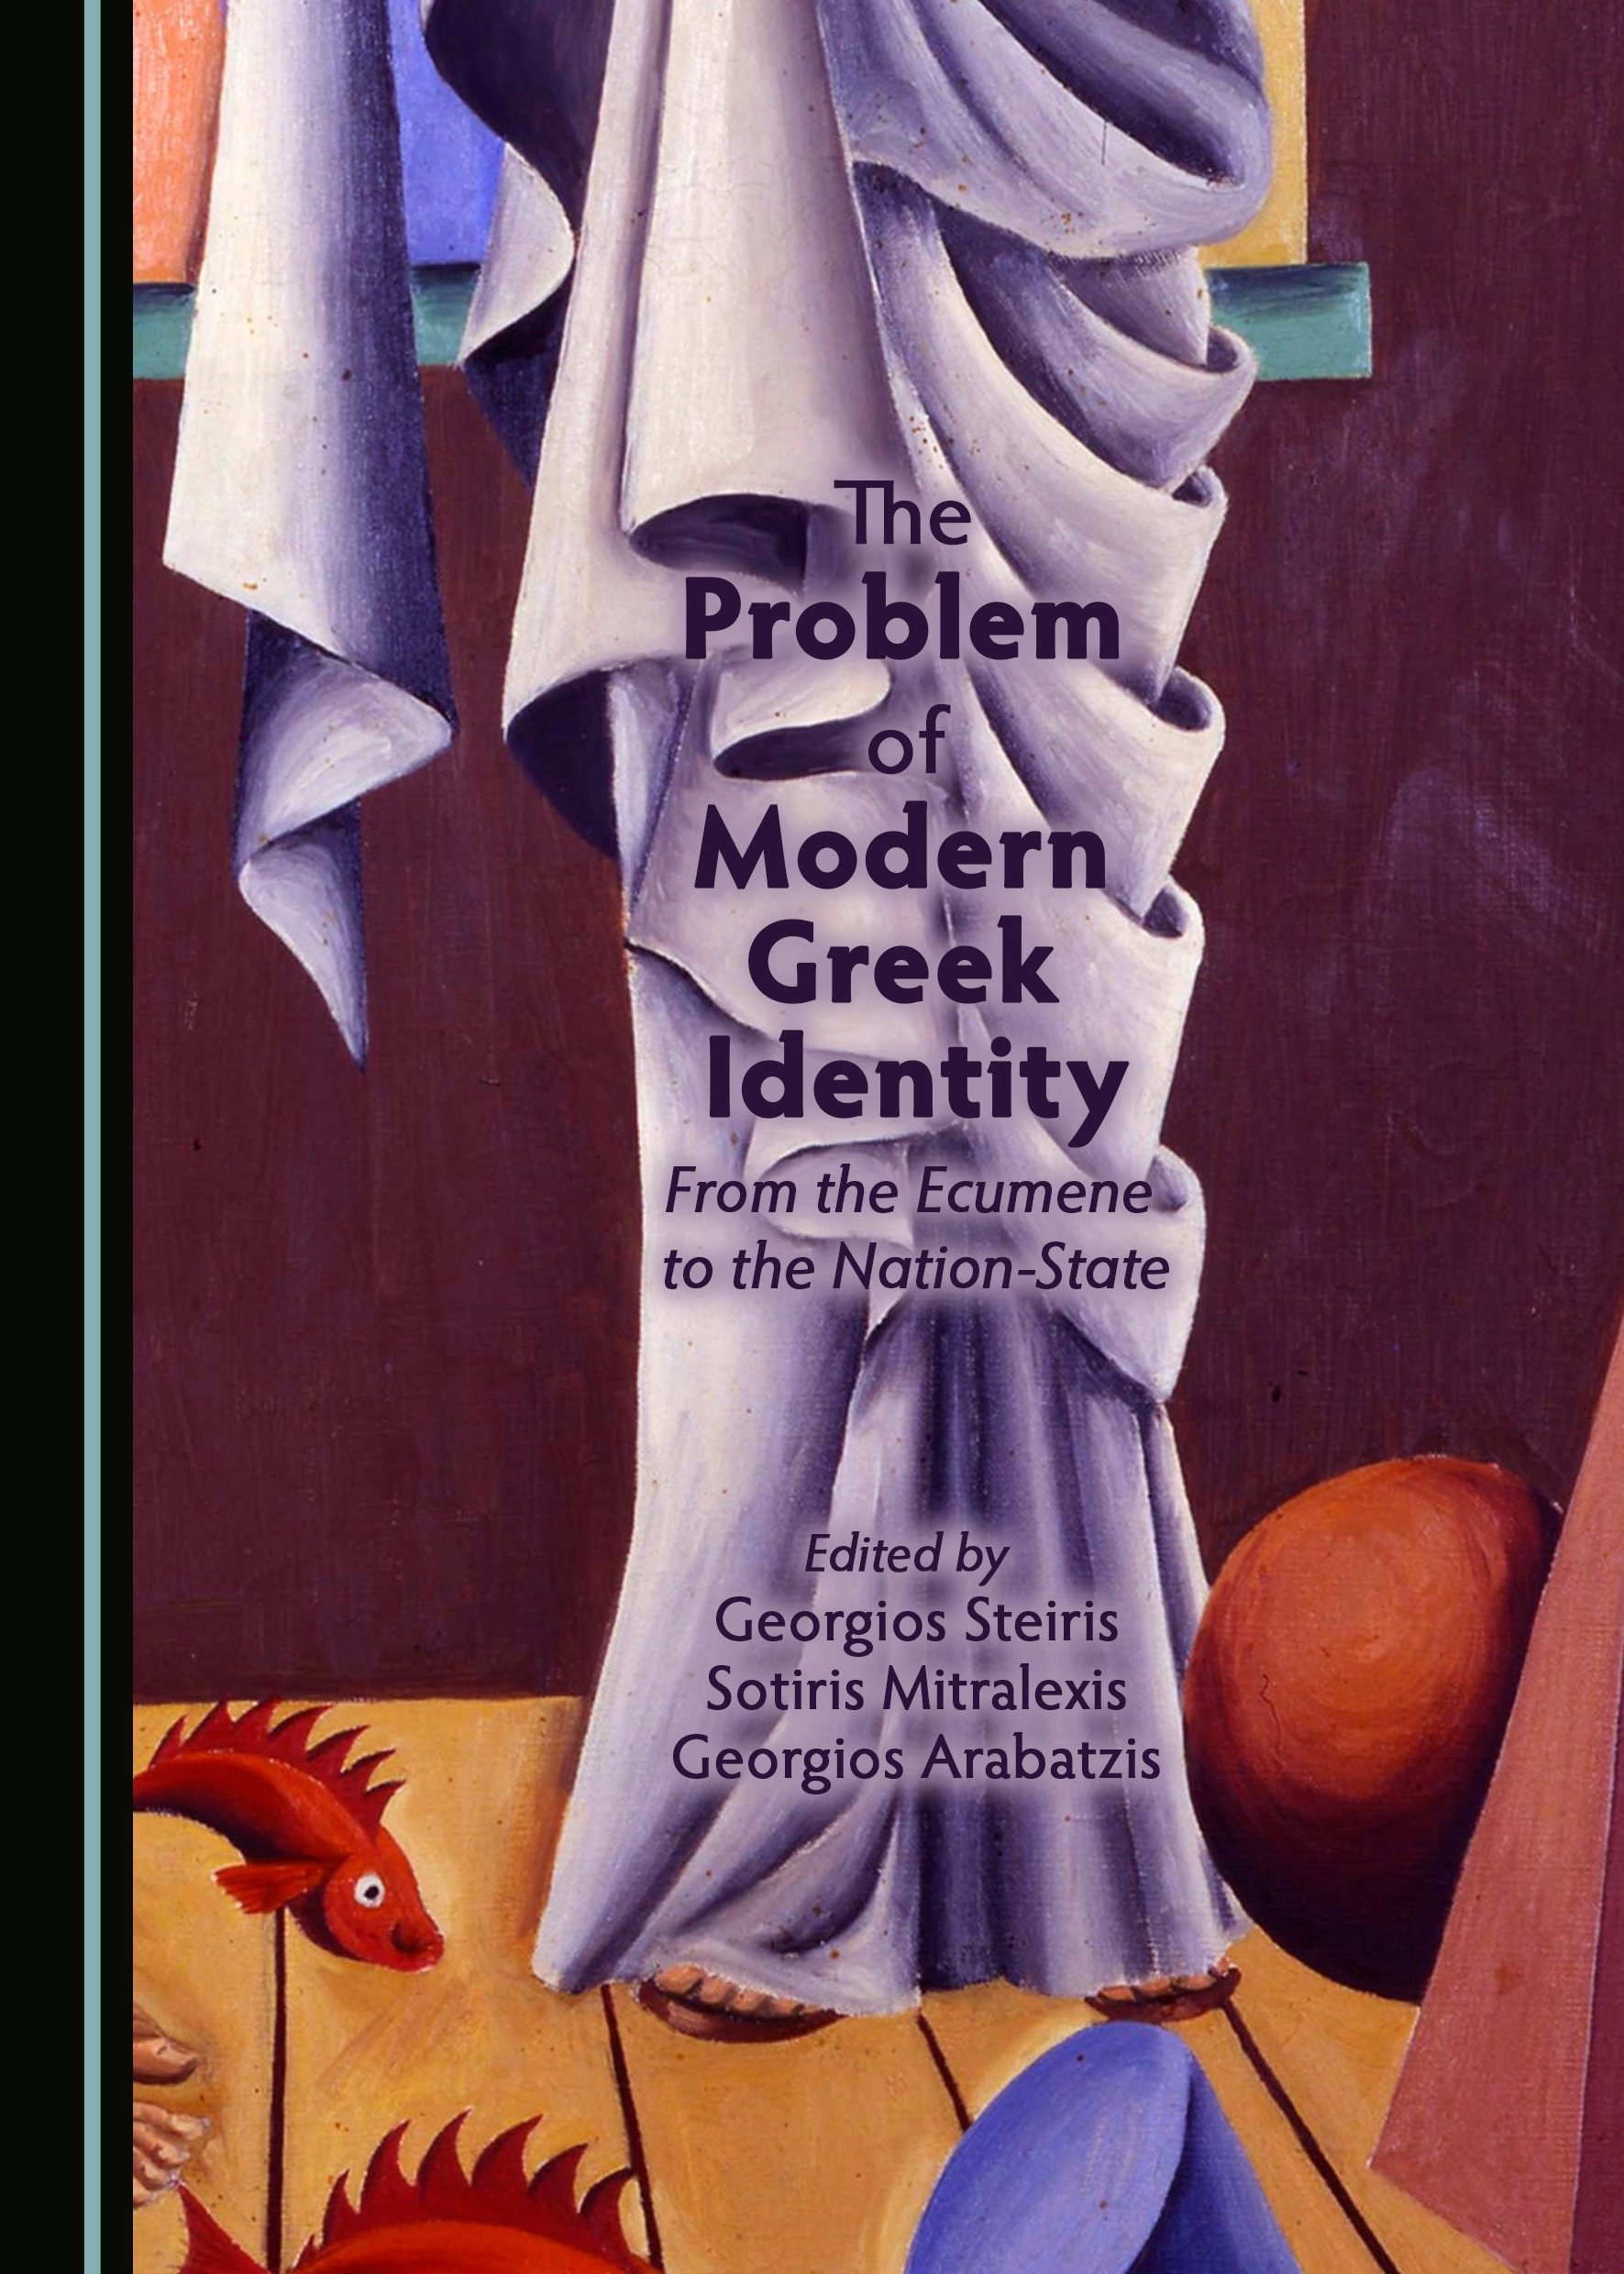 The Problem of Modern Greek Identity: From the Ecumene to the Nation-State